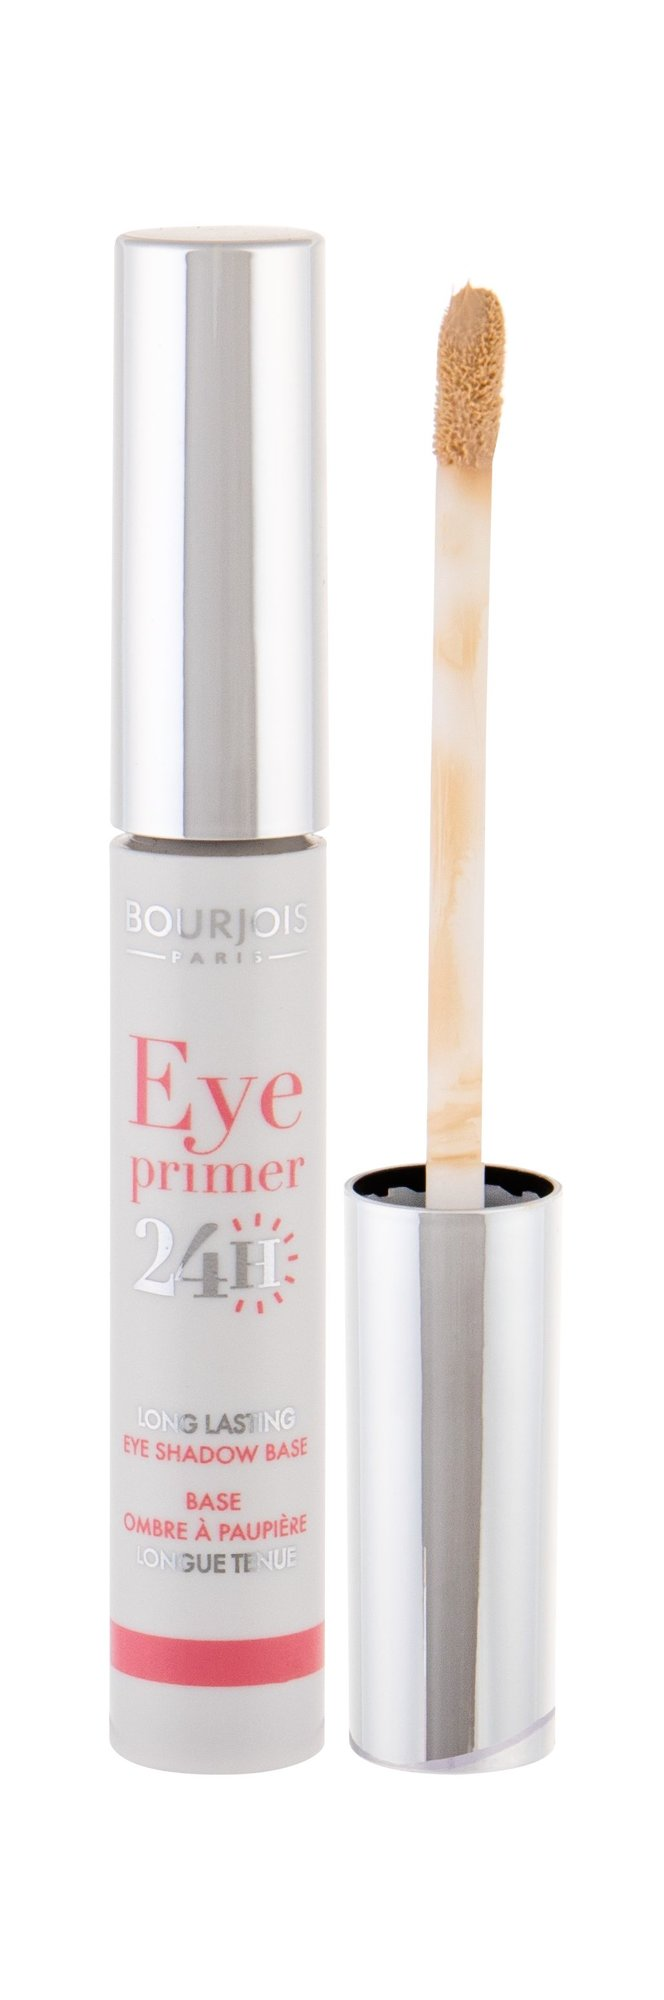 BOURJOIS Paris Eye Primer Eyeshadow Base 6ml 01 Universal